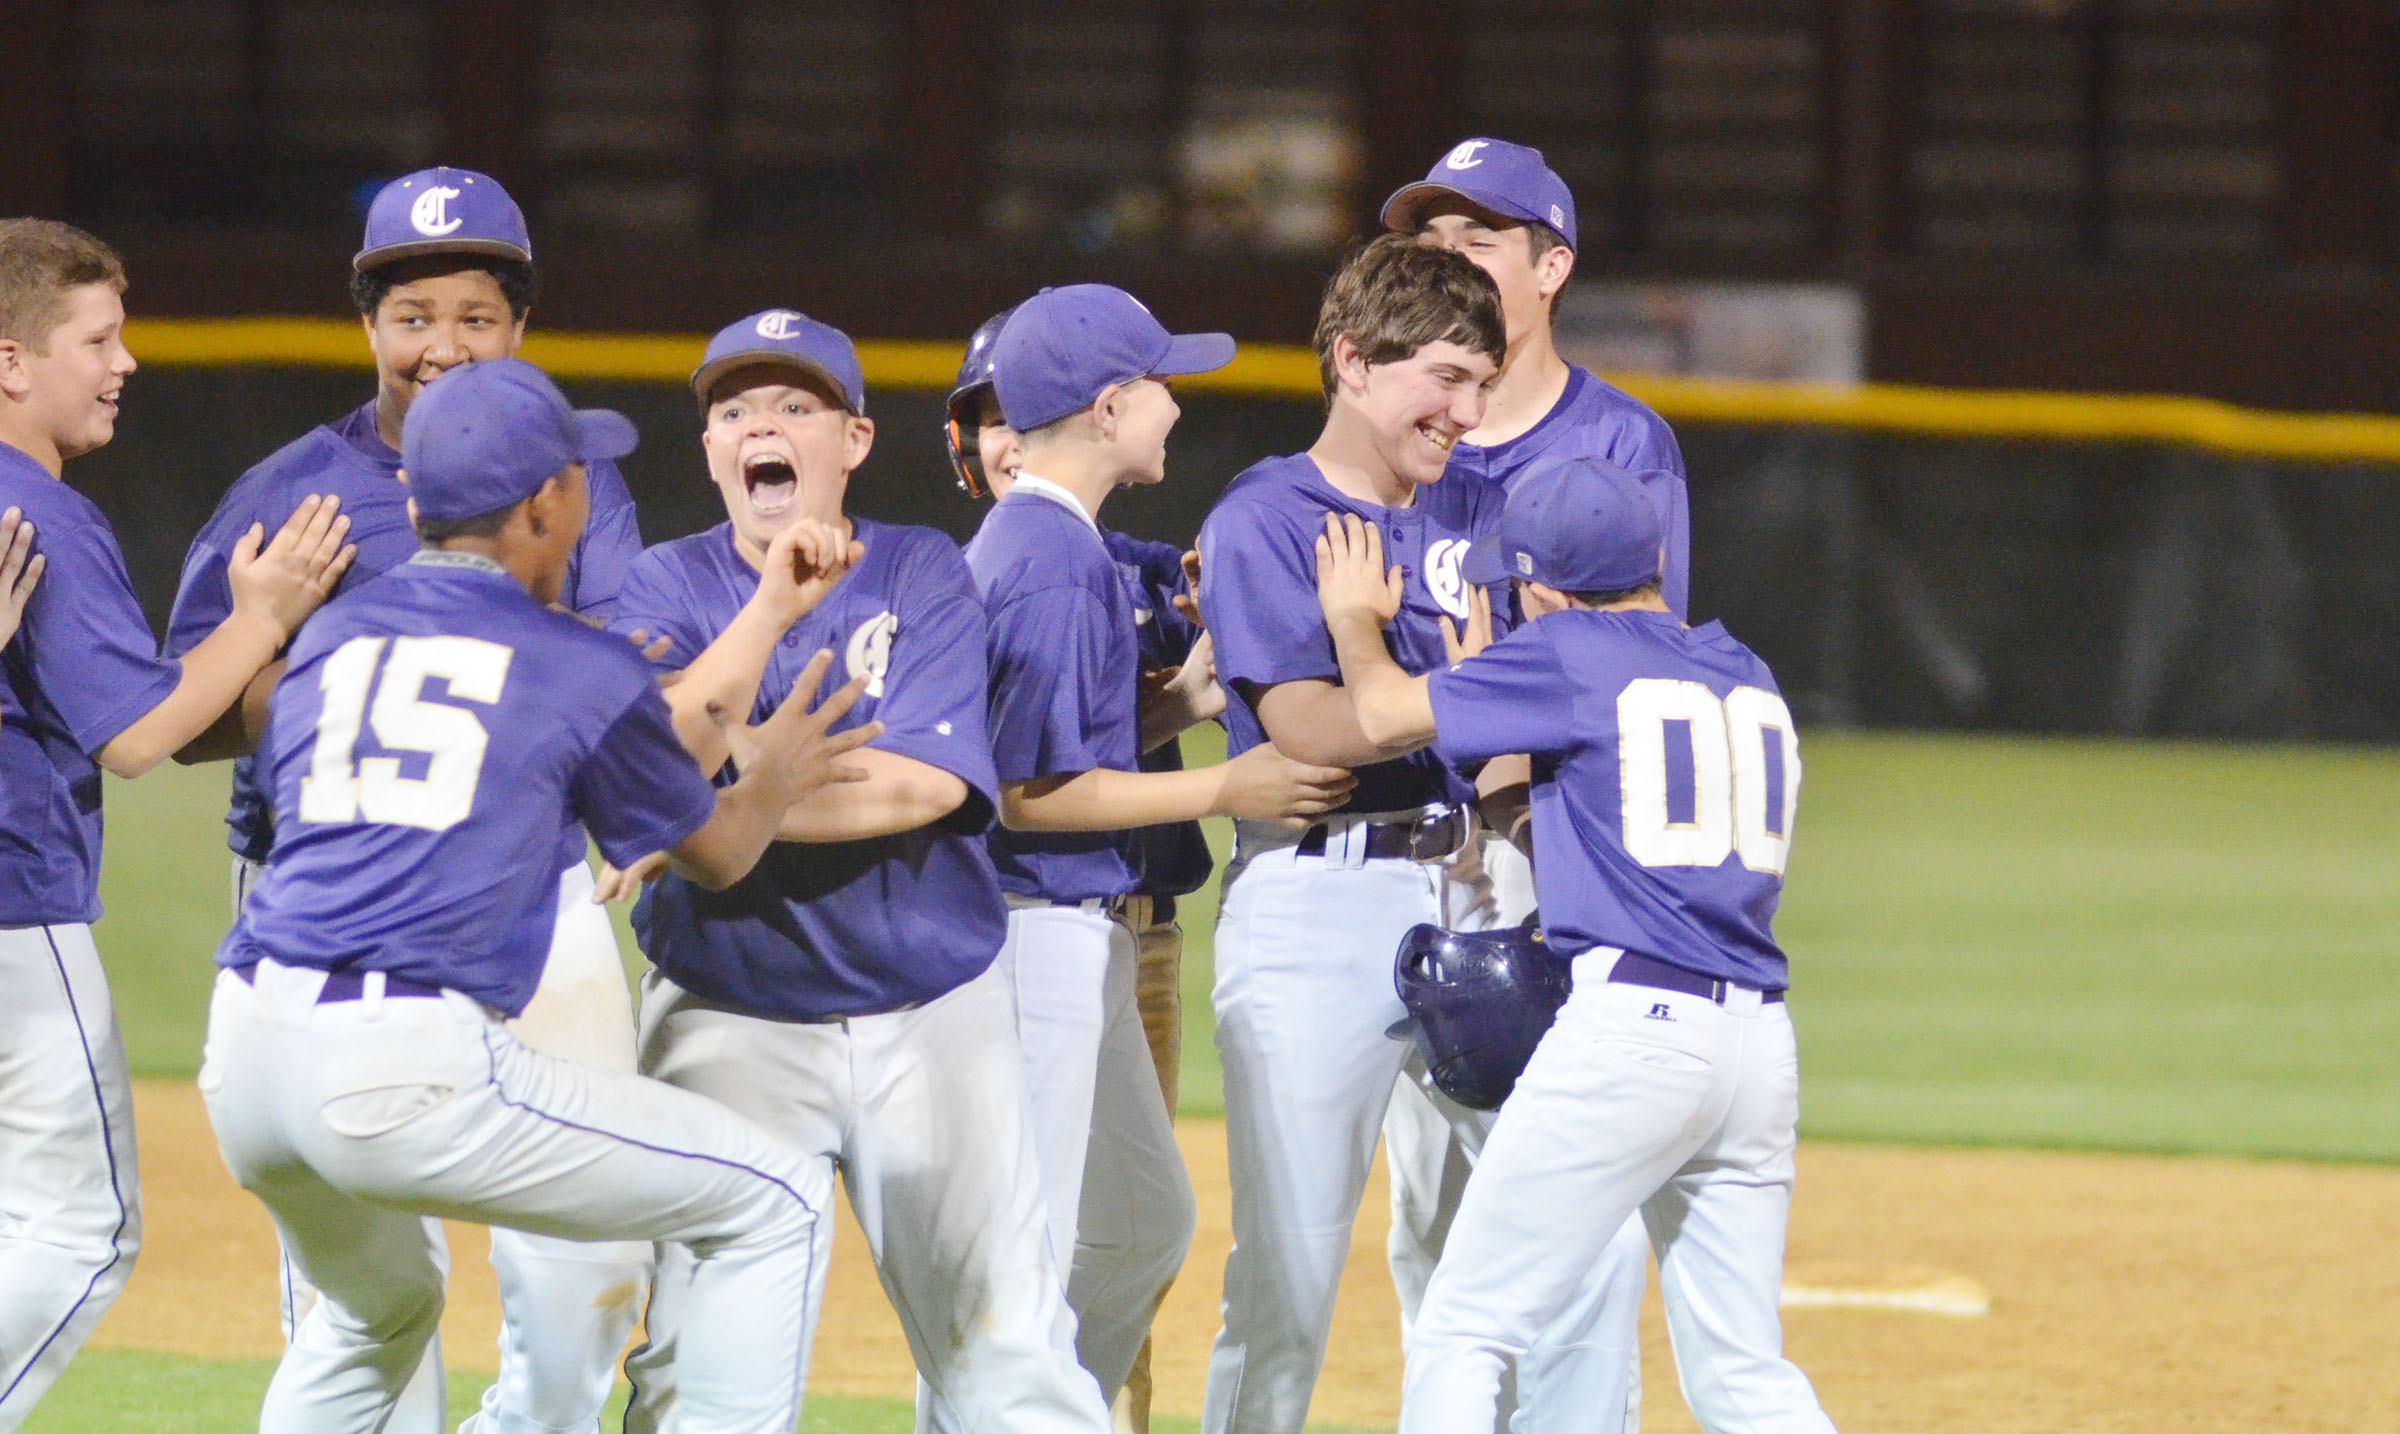 CMS seventh-grader Peyton Dabney is congratulated after getting the hit to win the game for his team.